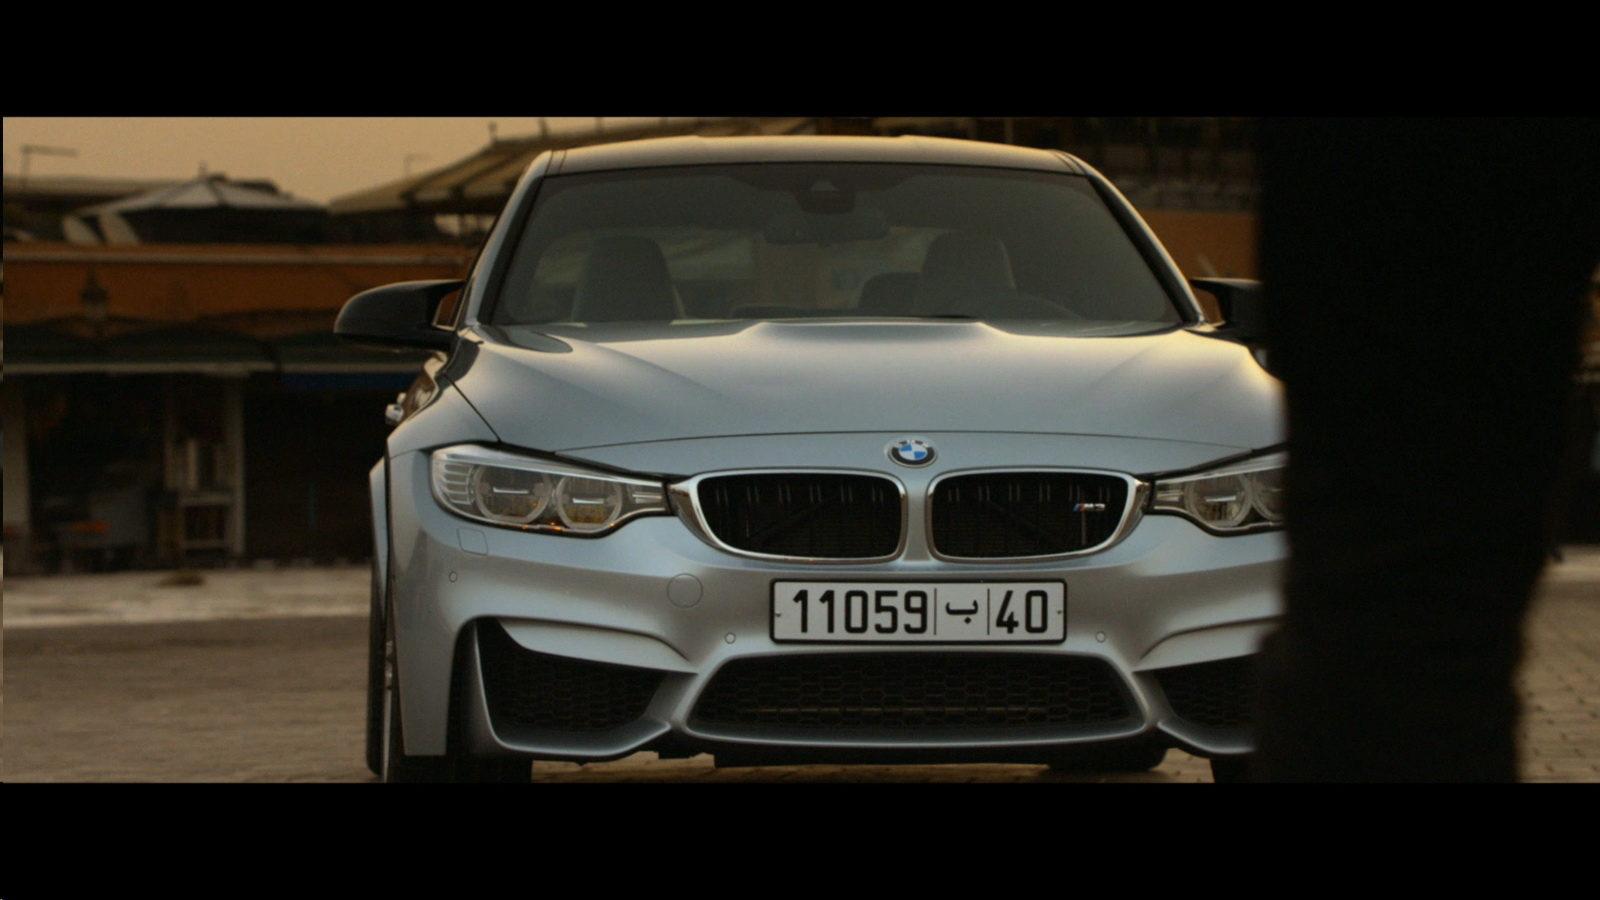 Bmw M3 Mission Impossible Rogue Nation 2015 Movie